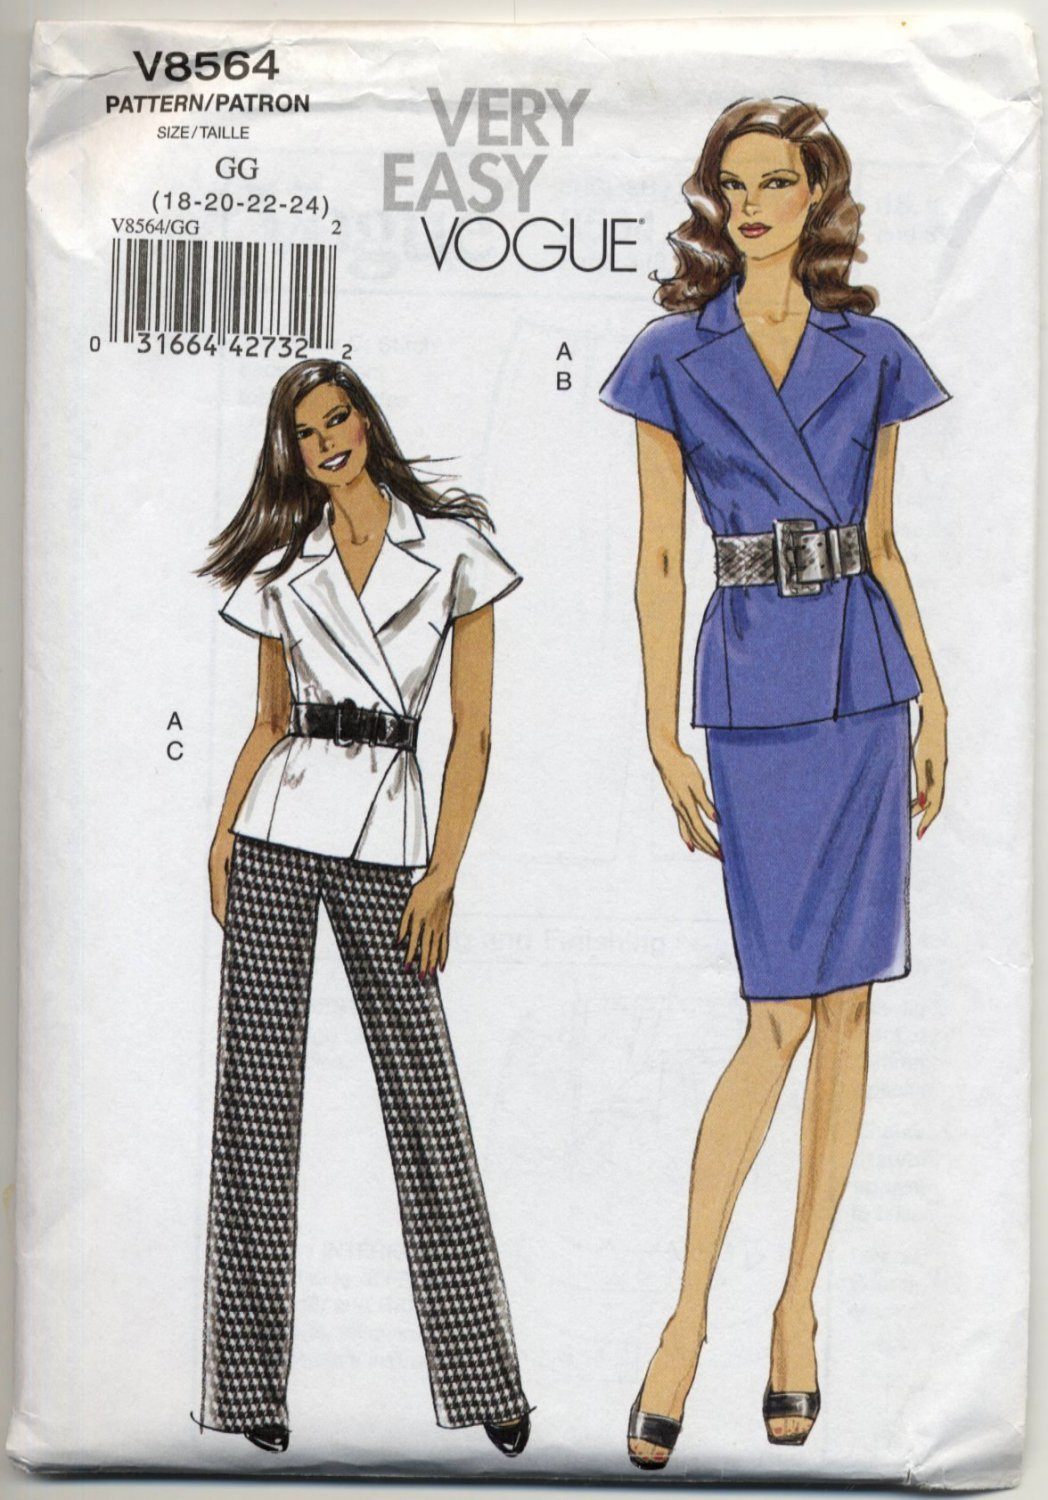 Vogue 8564 Jacket Skirt Pants Very Easy Sewing Pattern Misses' 18 20 22 24 Office Chic